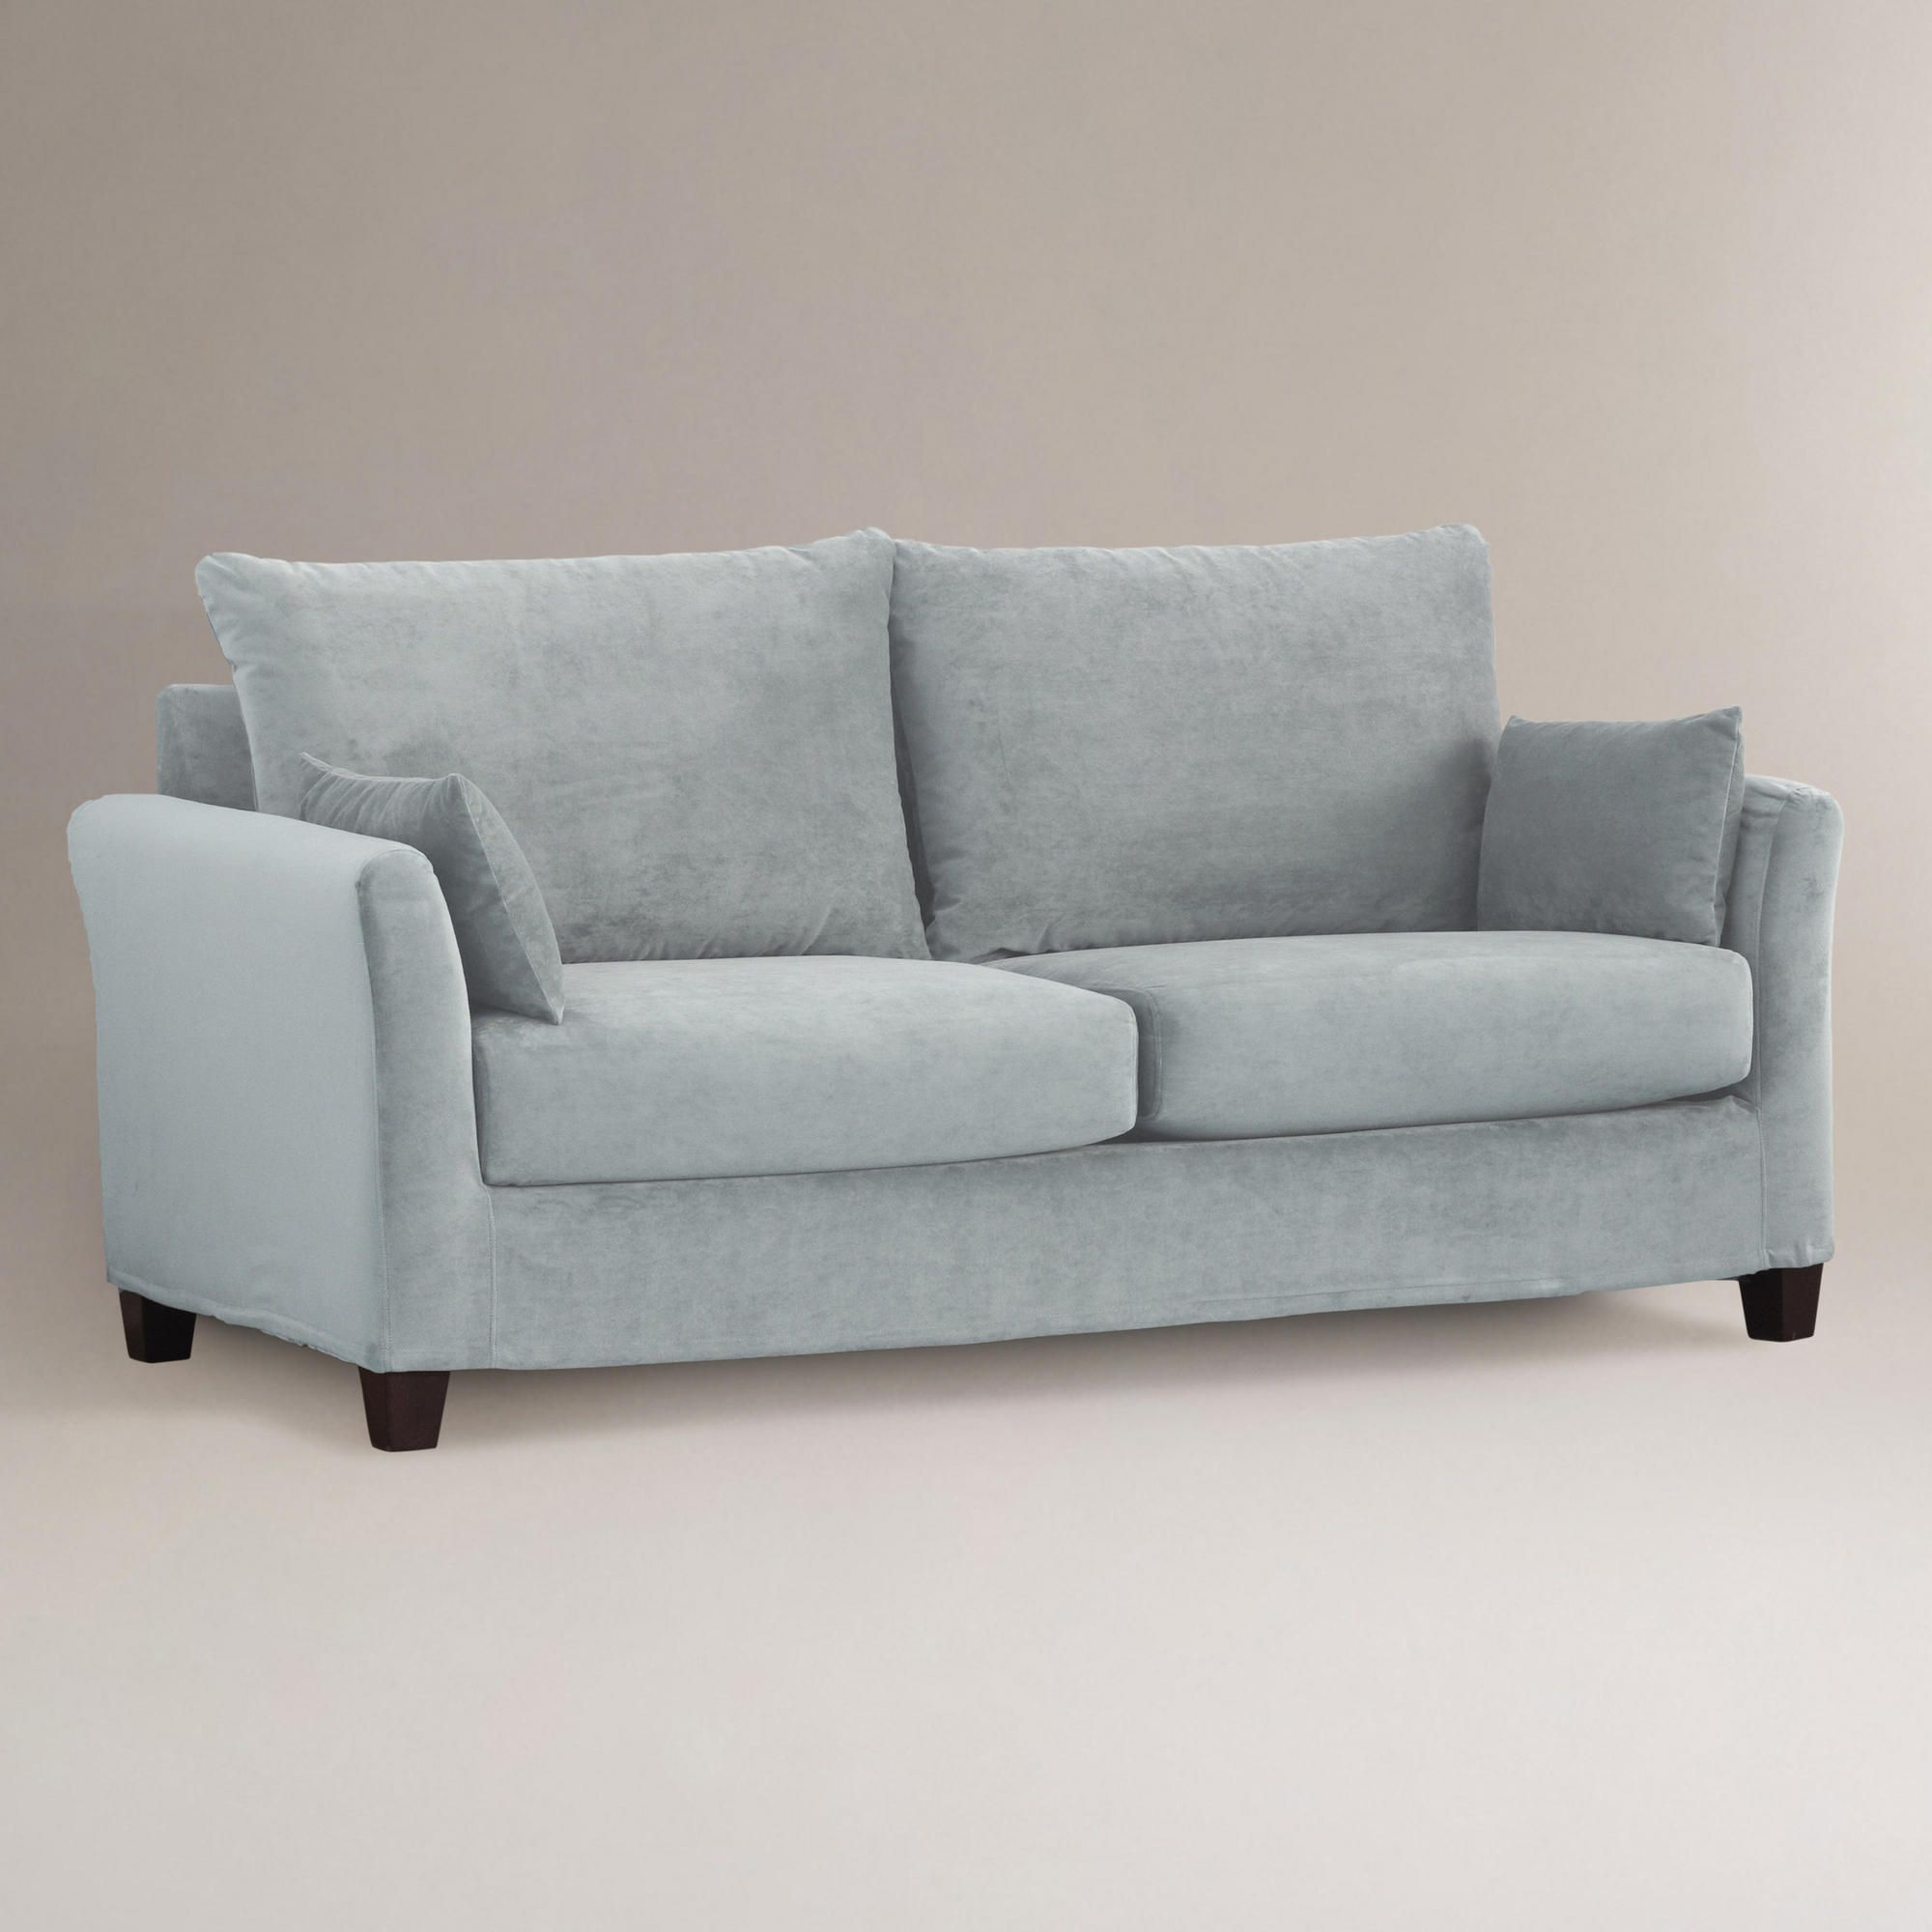 Cloud Luxe Sofa Velvet Slipcover Collection